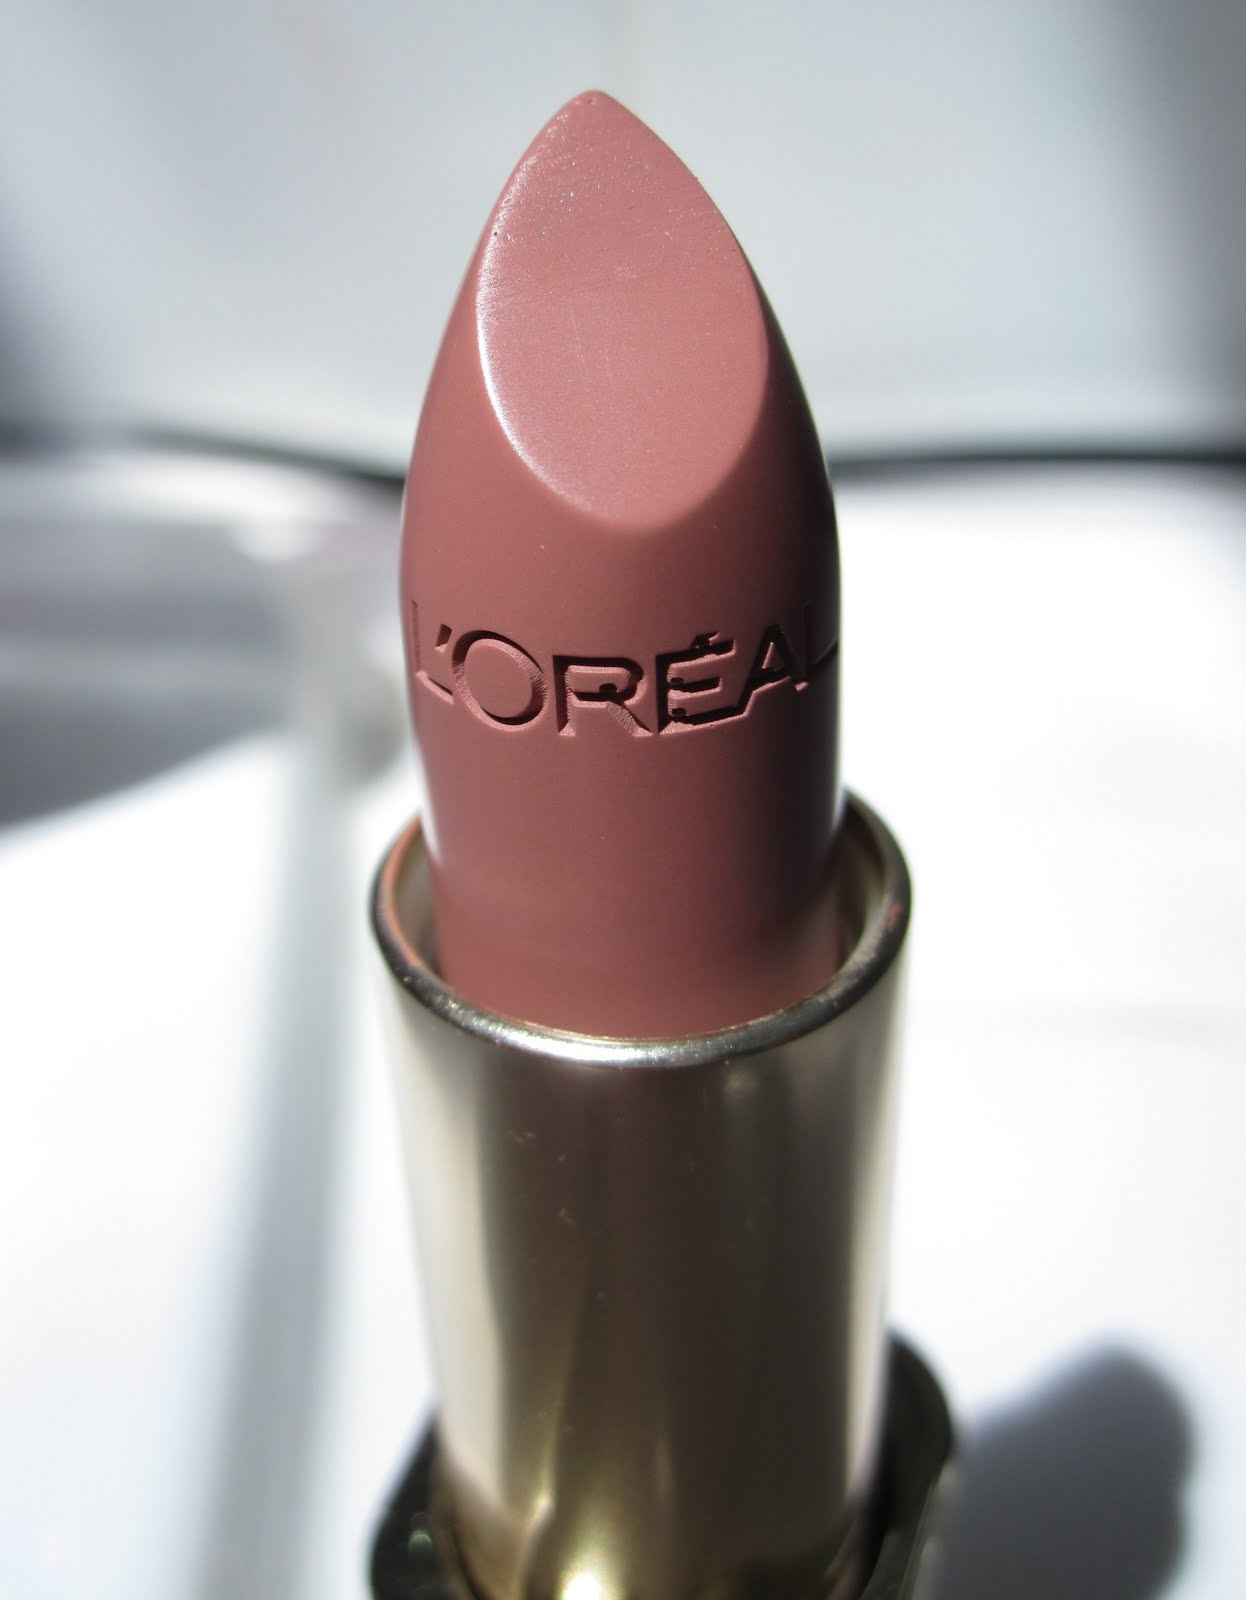 Loreal Nude Lipstick - Girls Wild Party